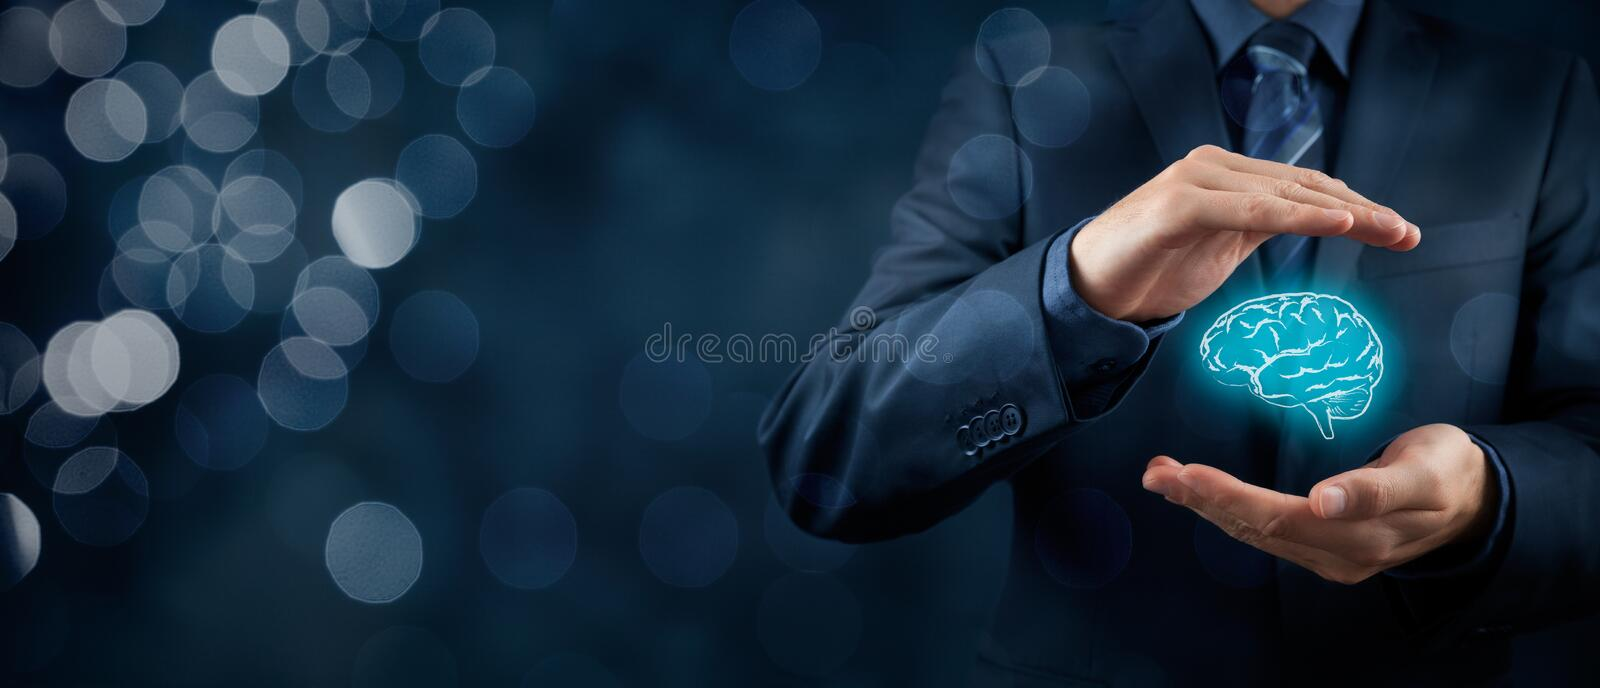 Intellectual property protection stock image